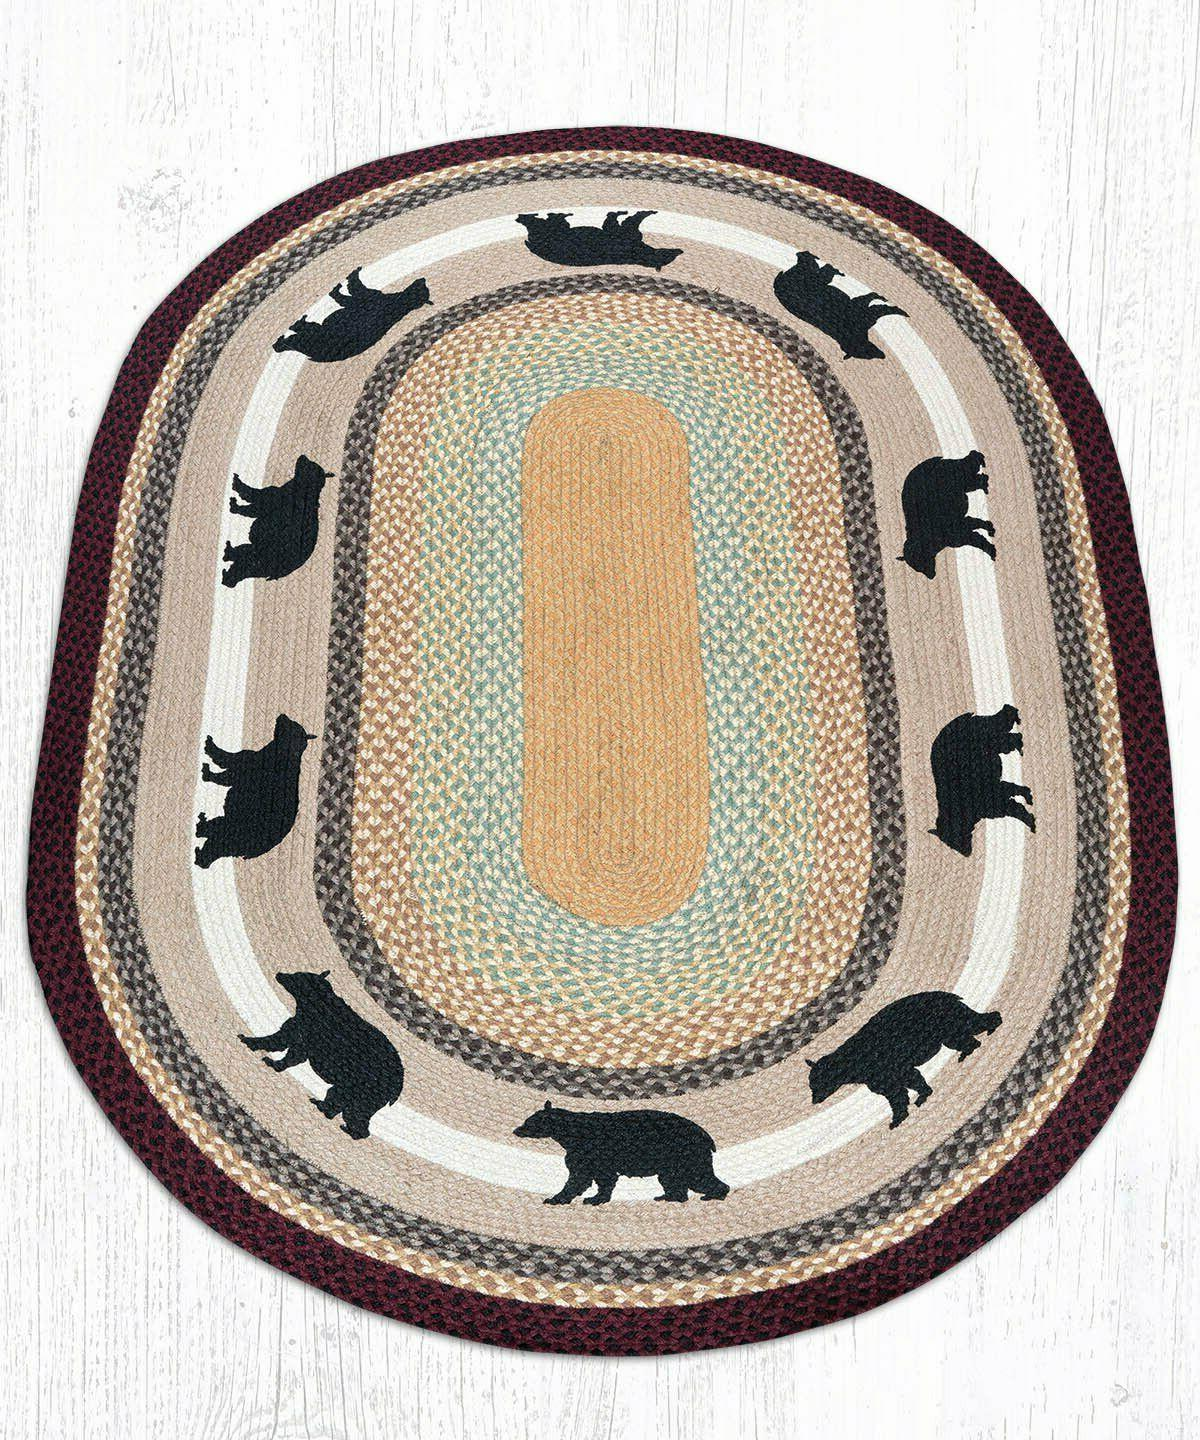 Braided Stenciled Oval CABIN BEAR. Earth Rugs.4 Sizes